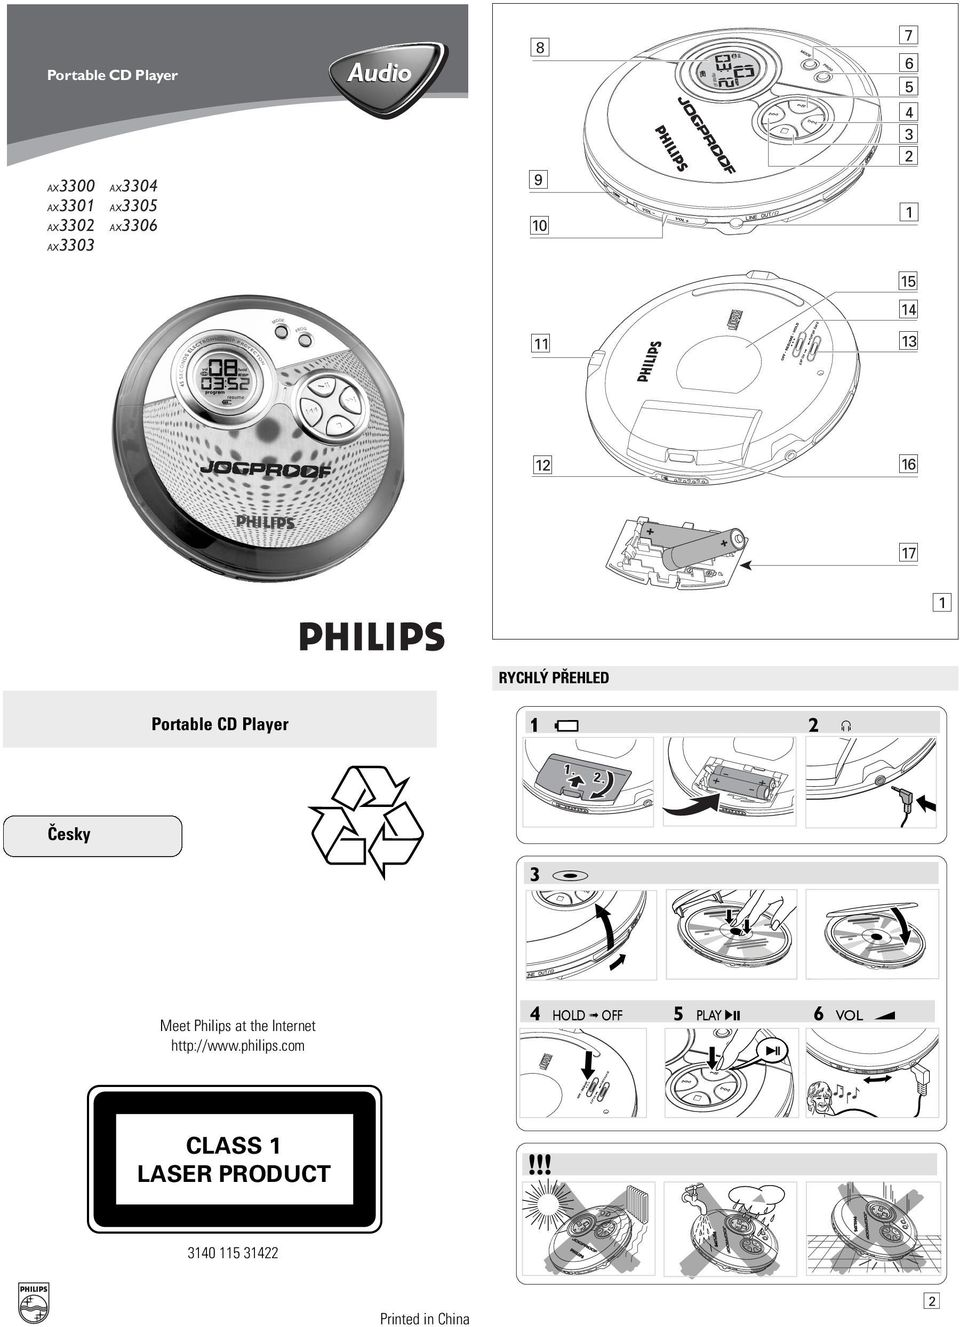 . Èesky 3 # Meet Philips at the Internet http://www.philips.